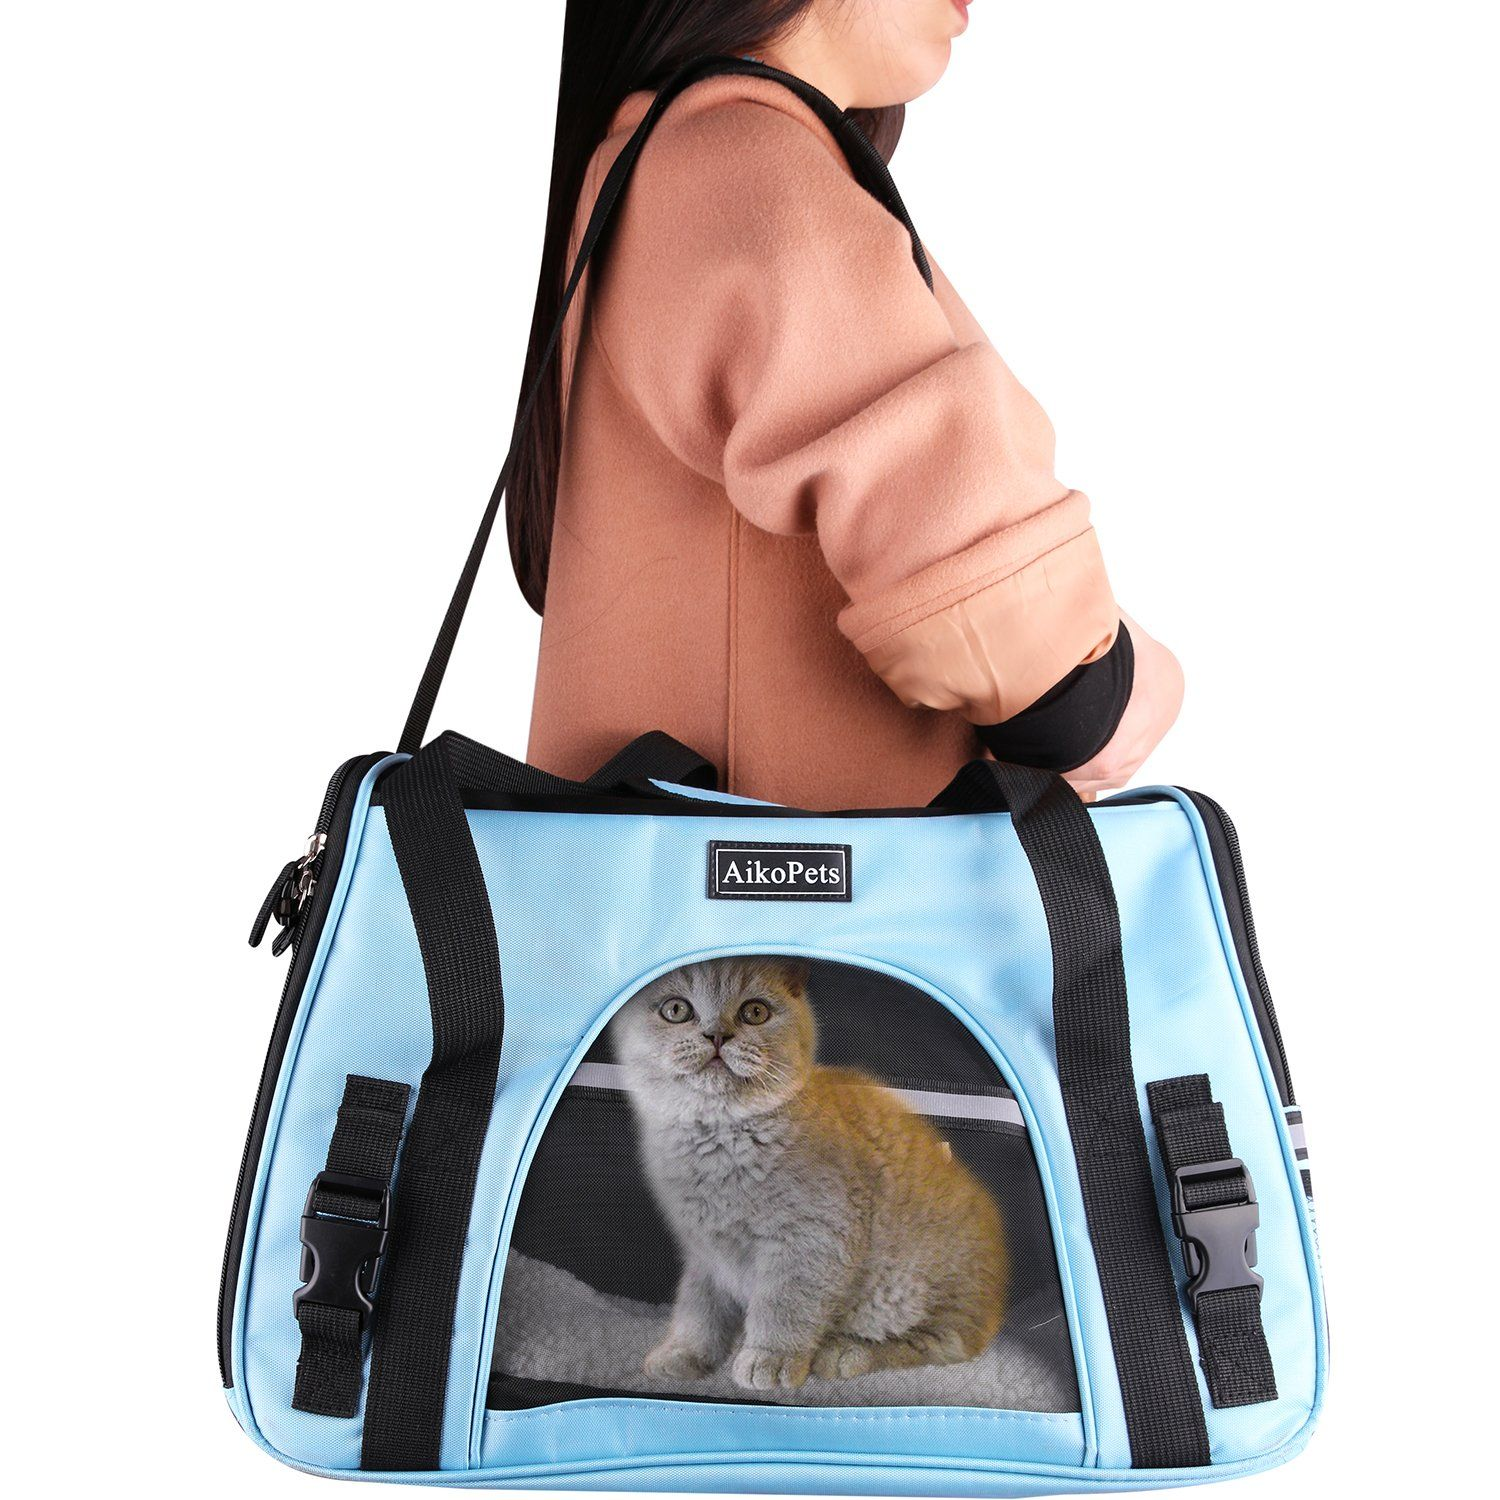 Kitten Carrier Pet Carrier Bag Breathable Softsided Portable Pet Carriers For Small Dogs And Cats Blue Small Sizes 17x Pet Carrier Bag Pet Carriers Carrier Bag